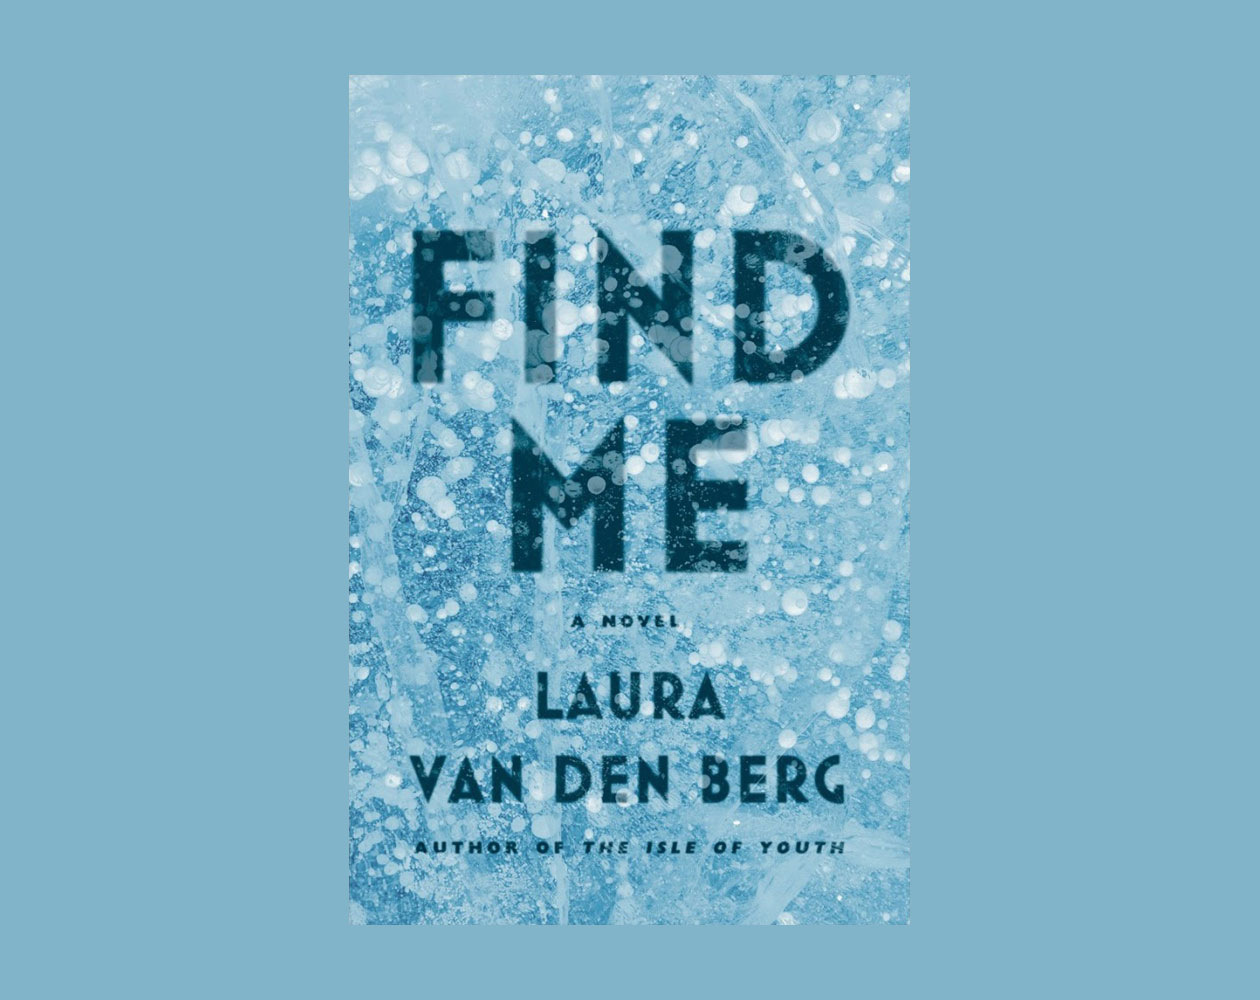 The 2016 Tournament Of Books Long List Morning News Joy Van Electrical Fuse Box Find Me By Laura Den Berg